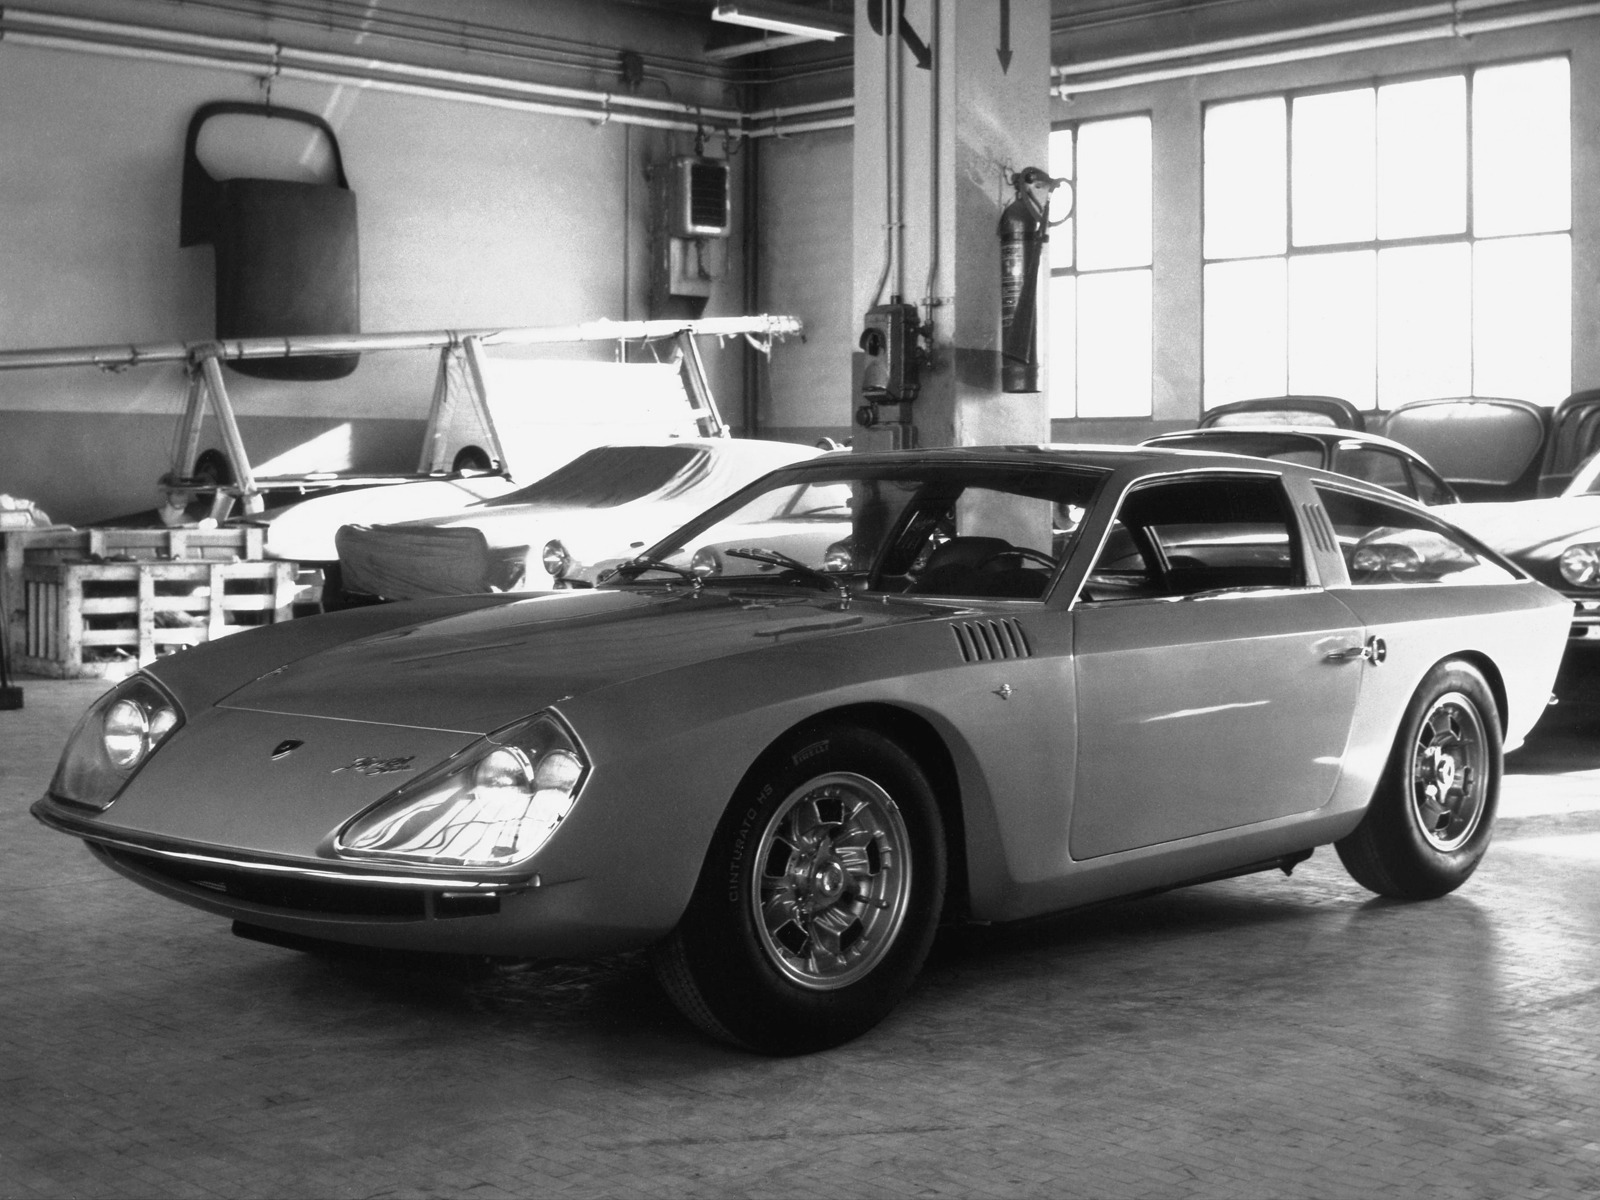 Top 5 Fastest Cars >> Lamborghini Flying Star II (1966) - Old Concept Cars